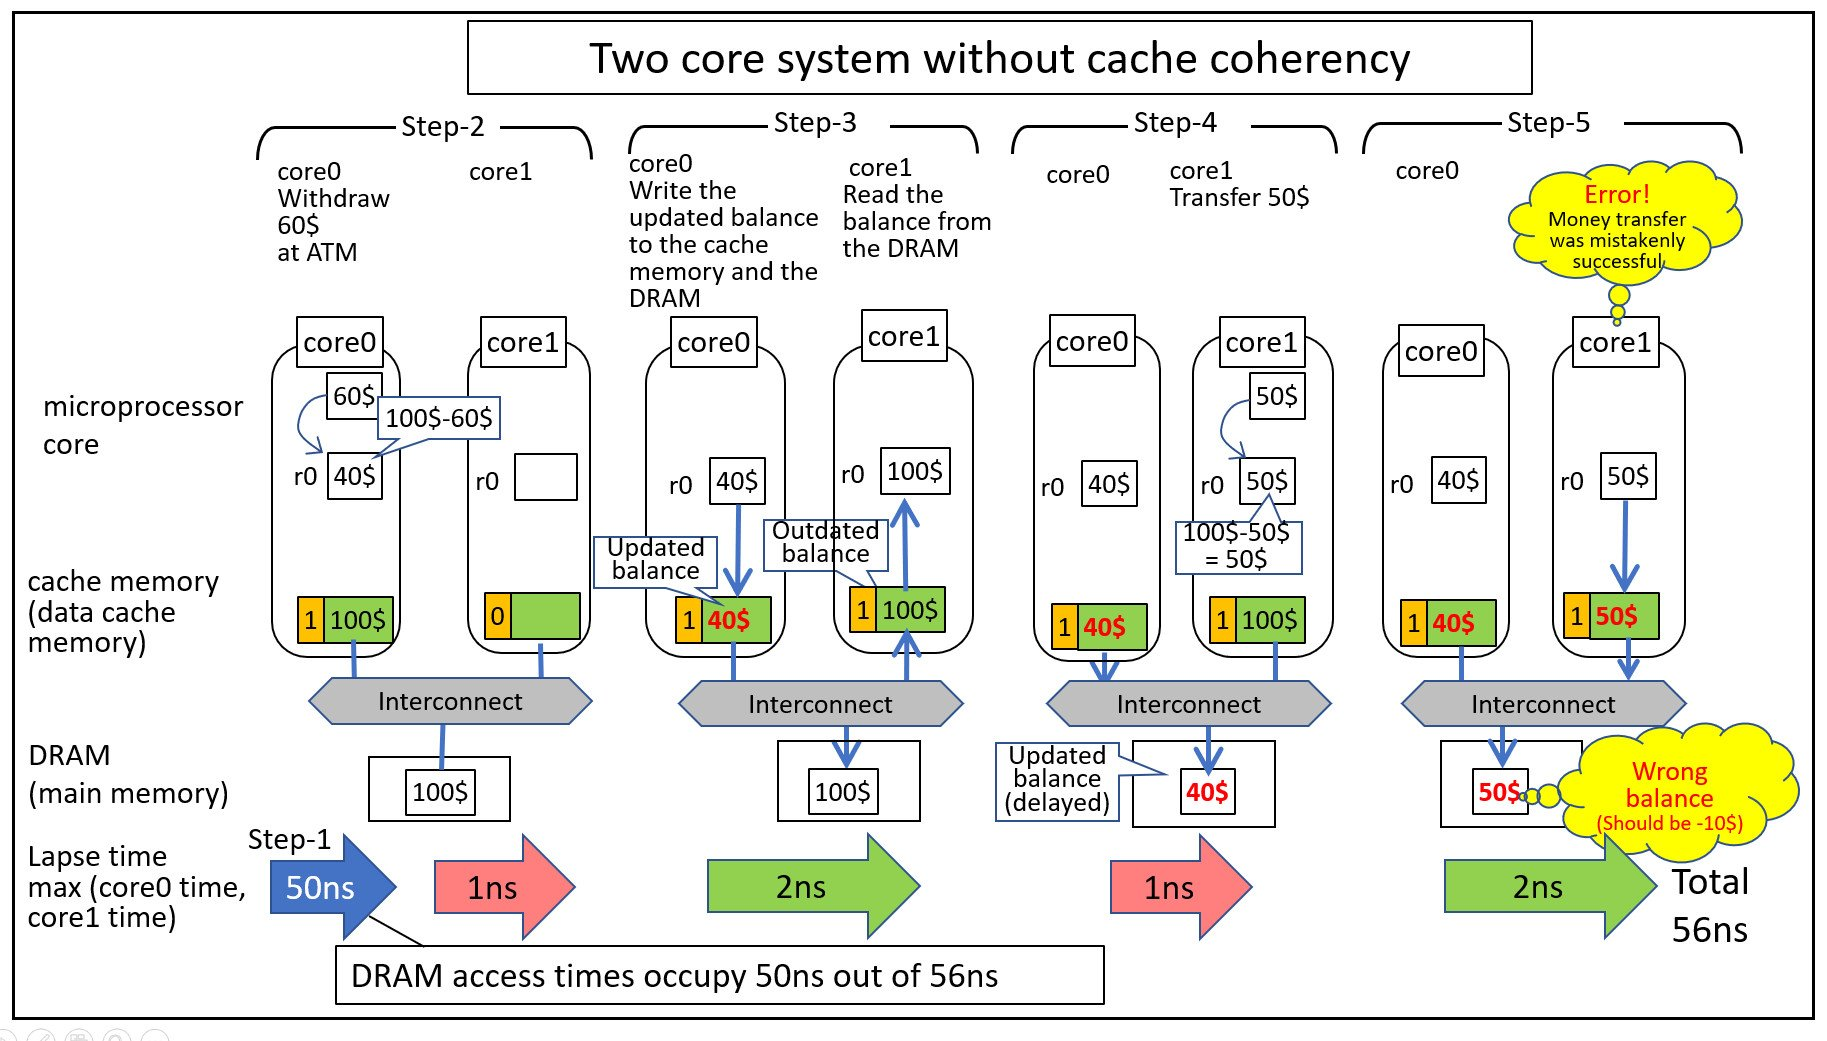 A diagram showing each step of the banking problem by both the microprocessor and the cache memory. It also shows the time lapse for each step.